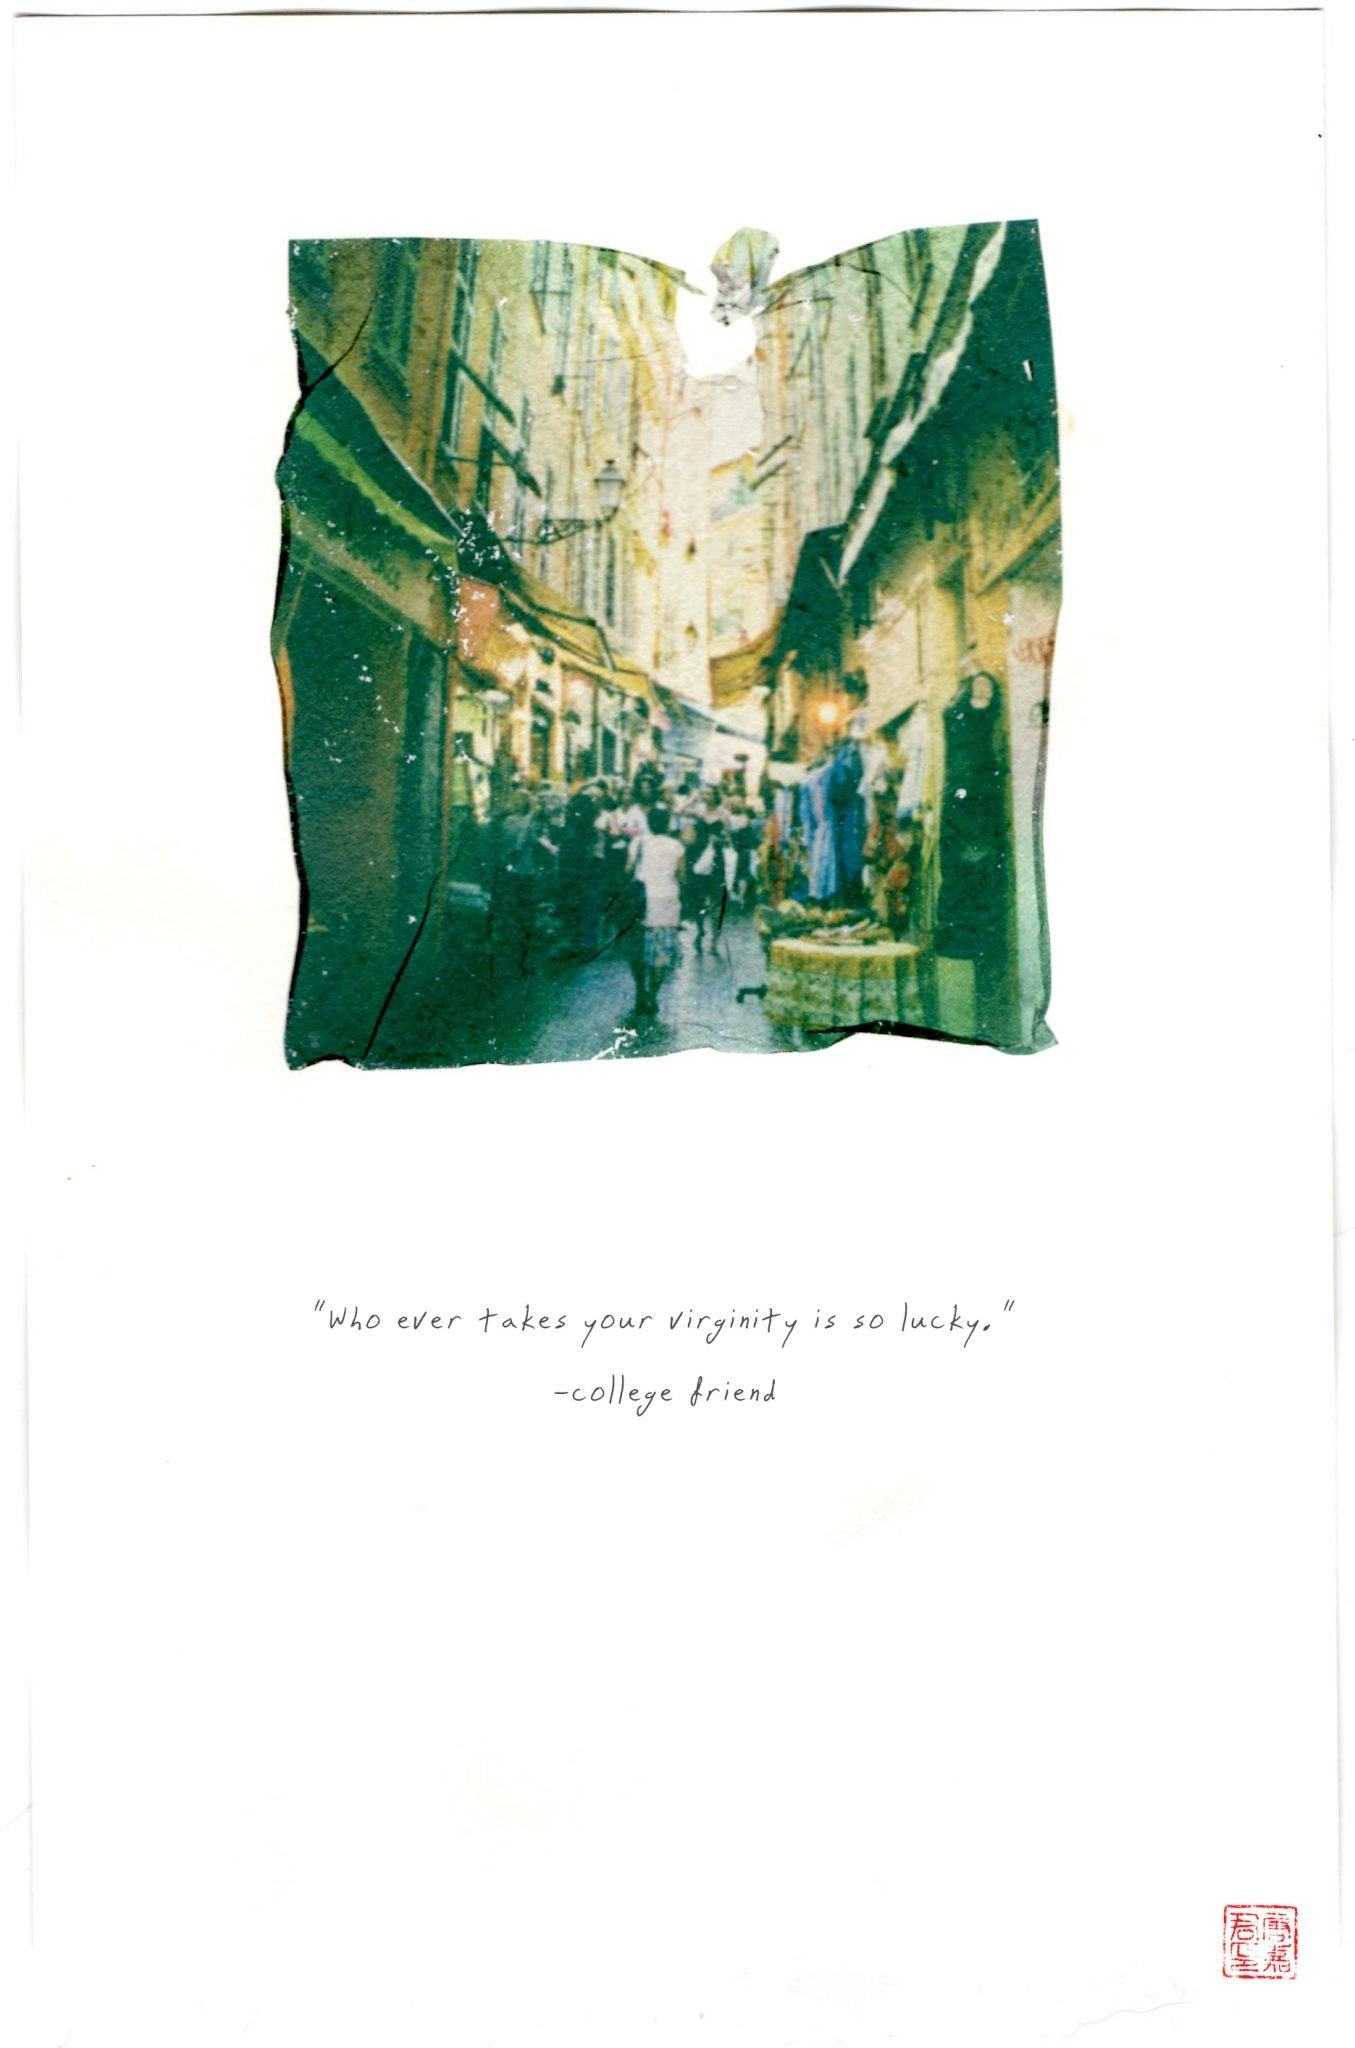 photo of city with quote about virginity